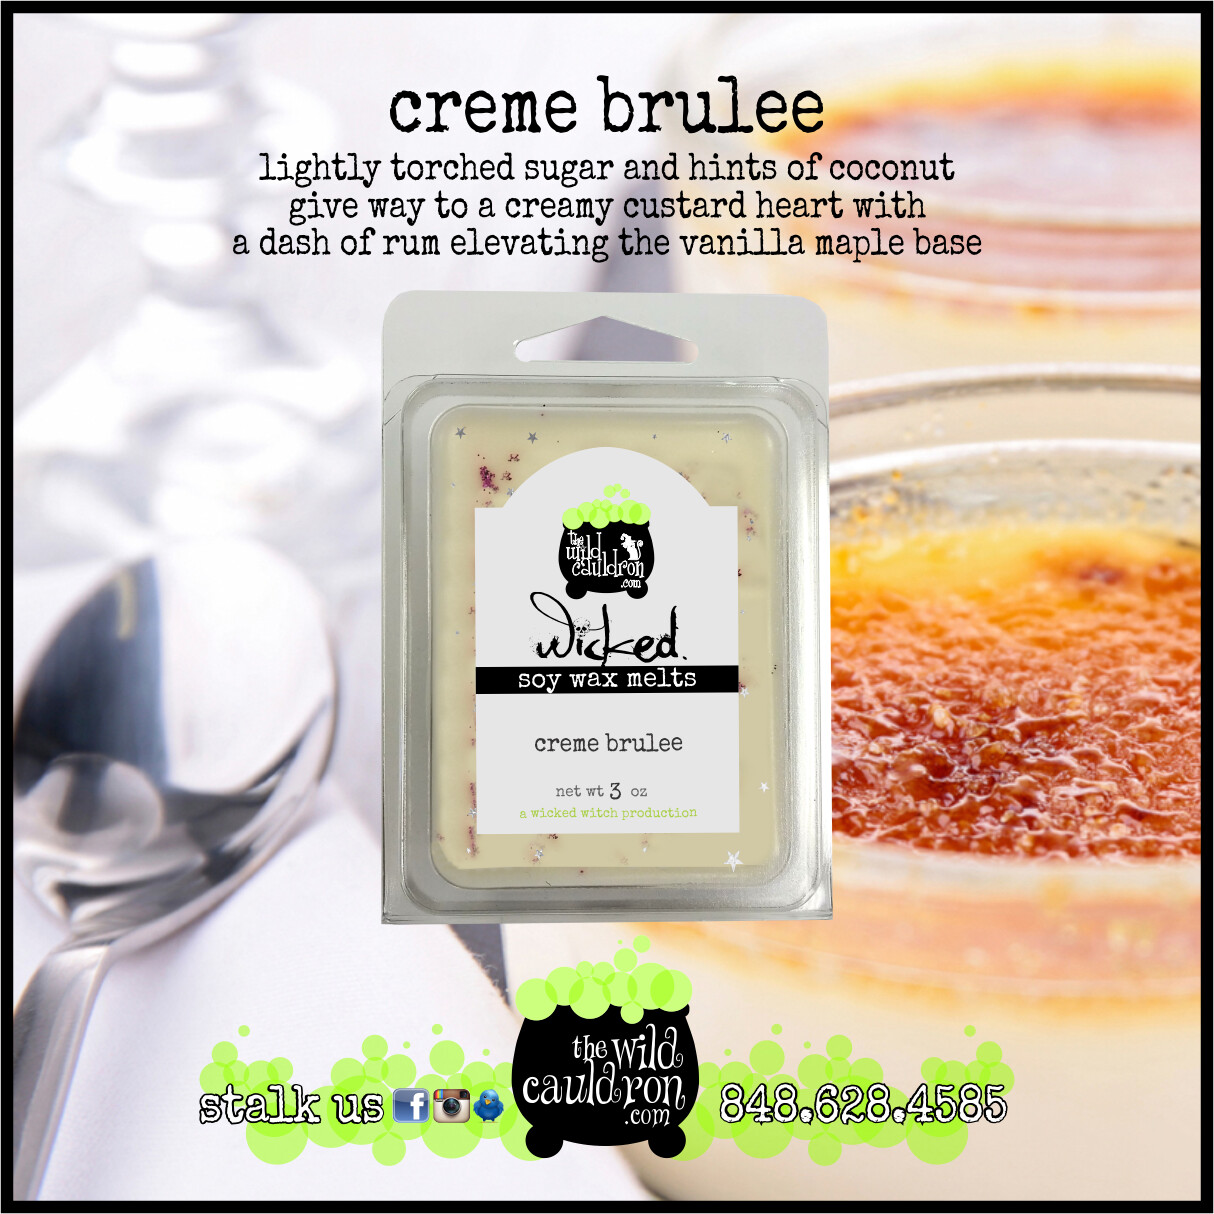 Creme Brulee Wicked Wax Melts